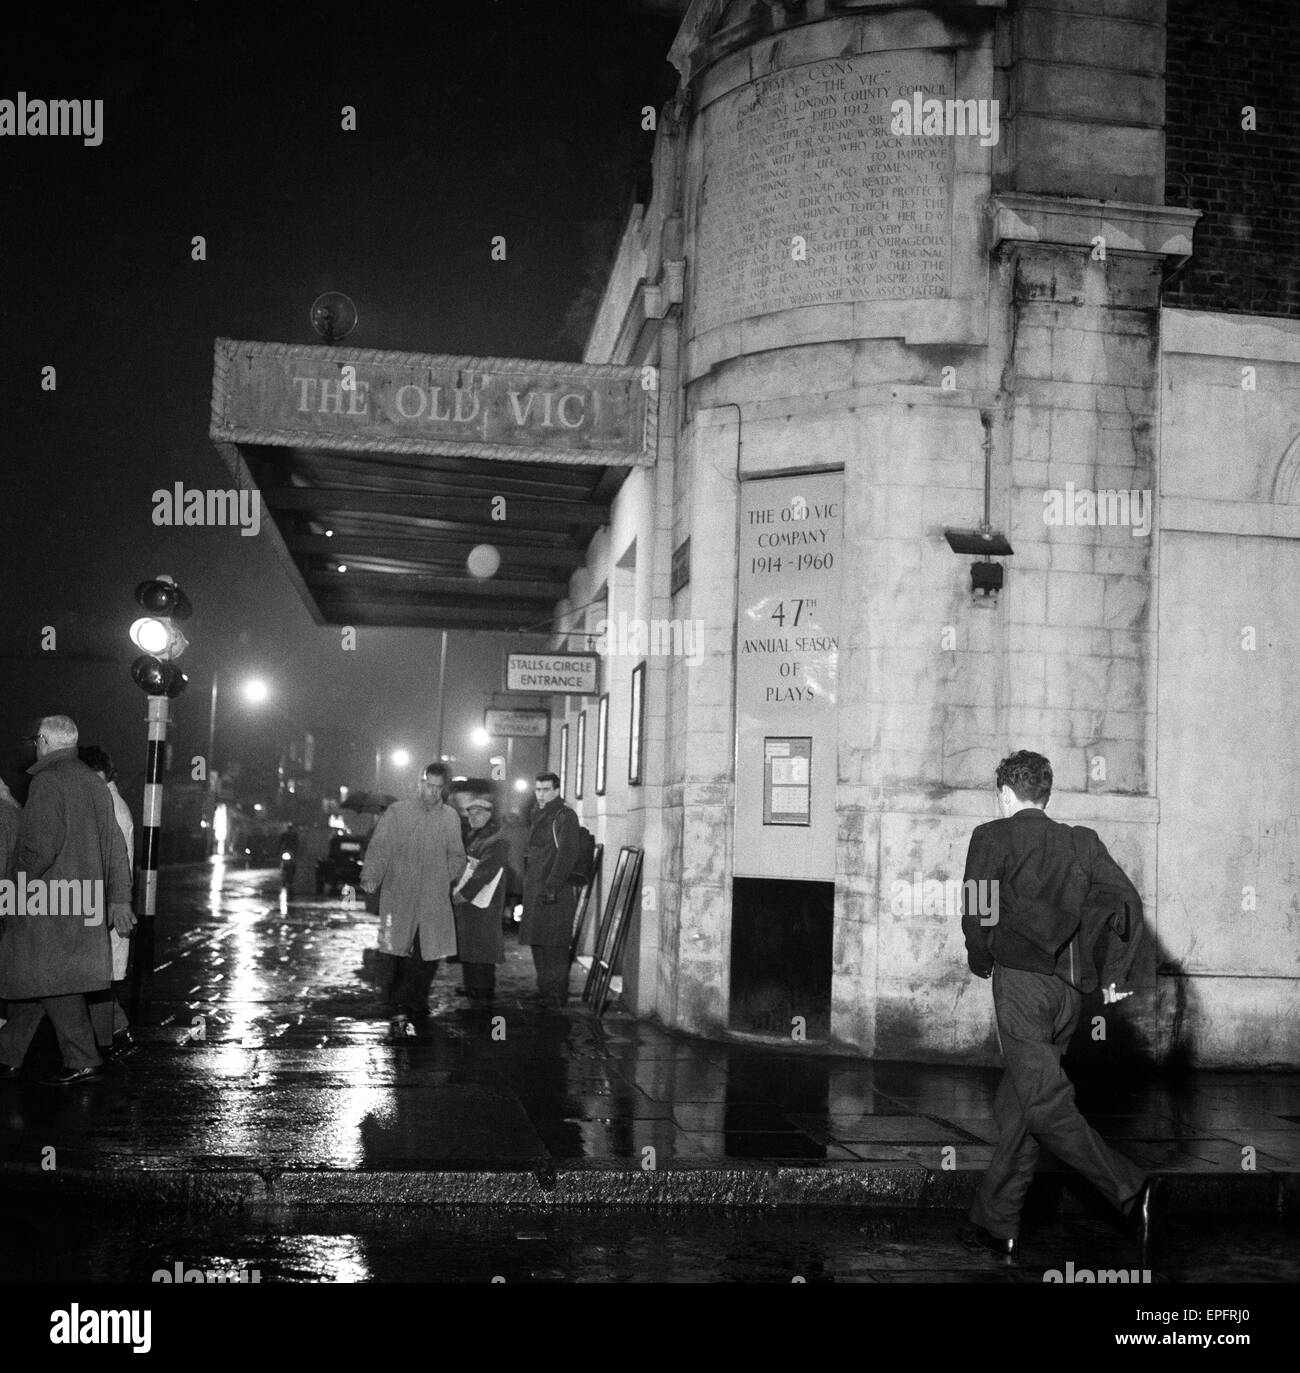 The Old Vic theatre in the West End, central London. 9th January 1961. - Stock Image